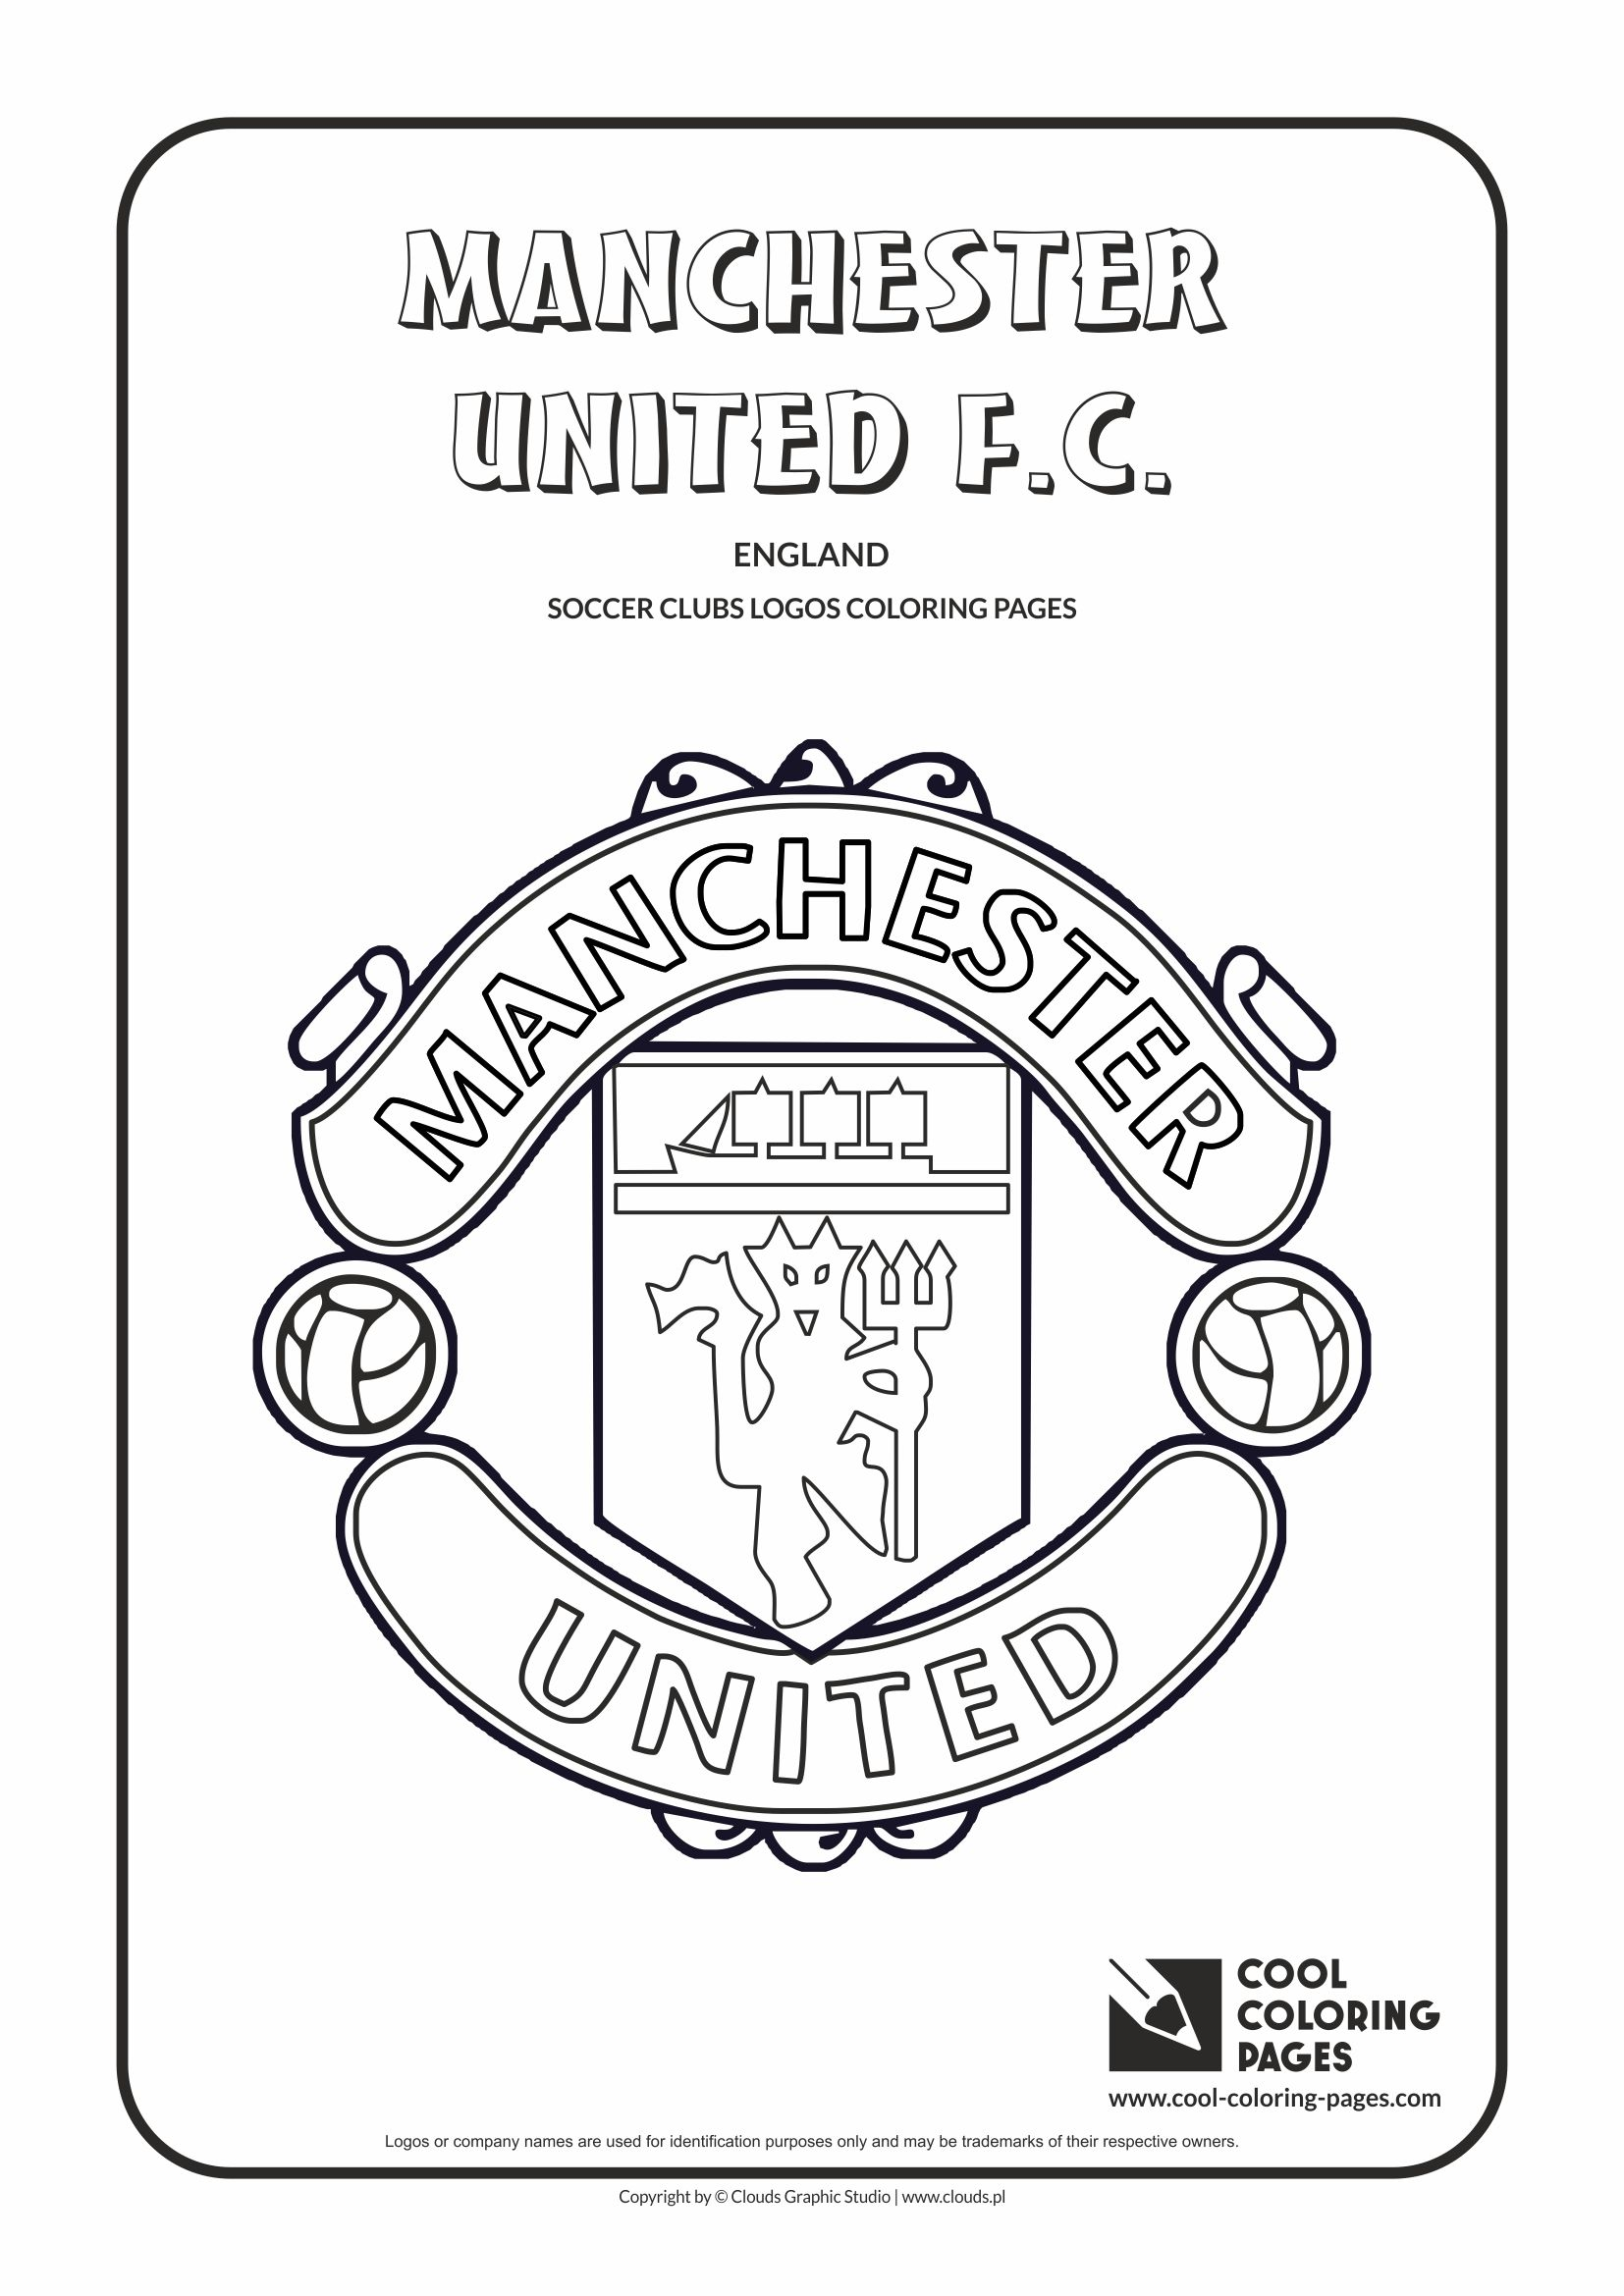 Cool Coloring Pages - Soccer Club Logos / Manchester United F.C. logo / Coloring page with Manchester United F.C. logo